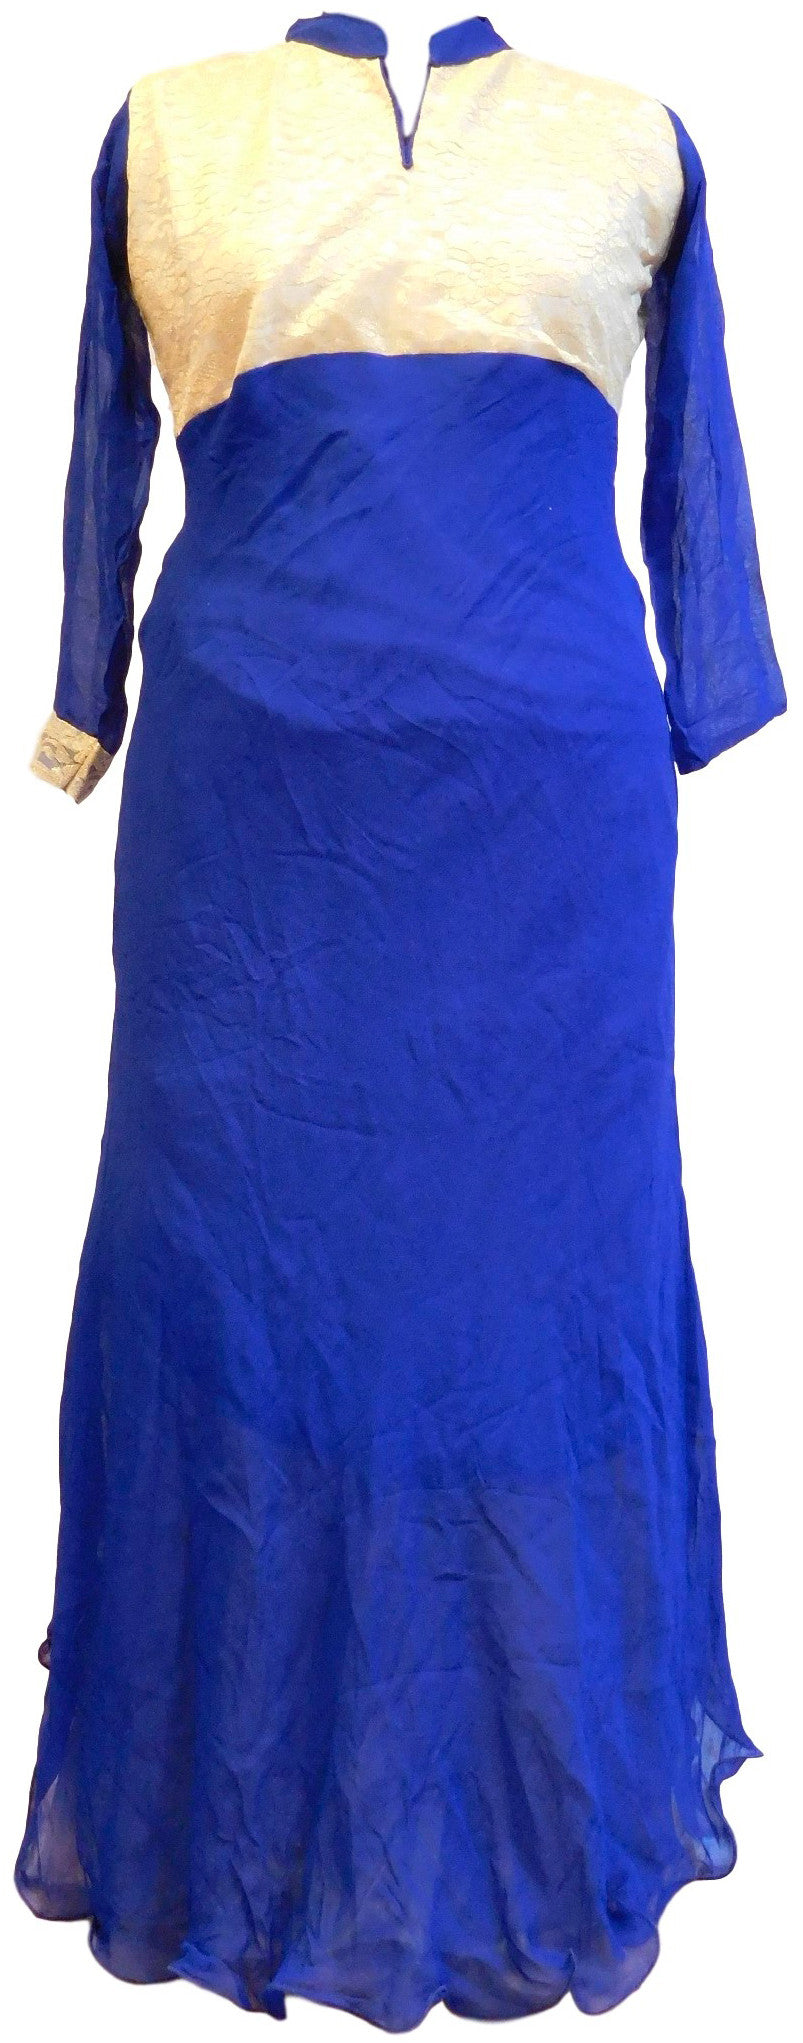 Blue & Golden Designer Georgette & Chantle Kurti